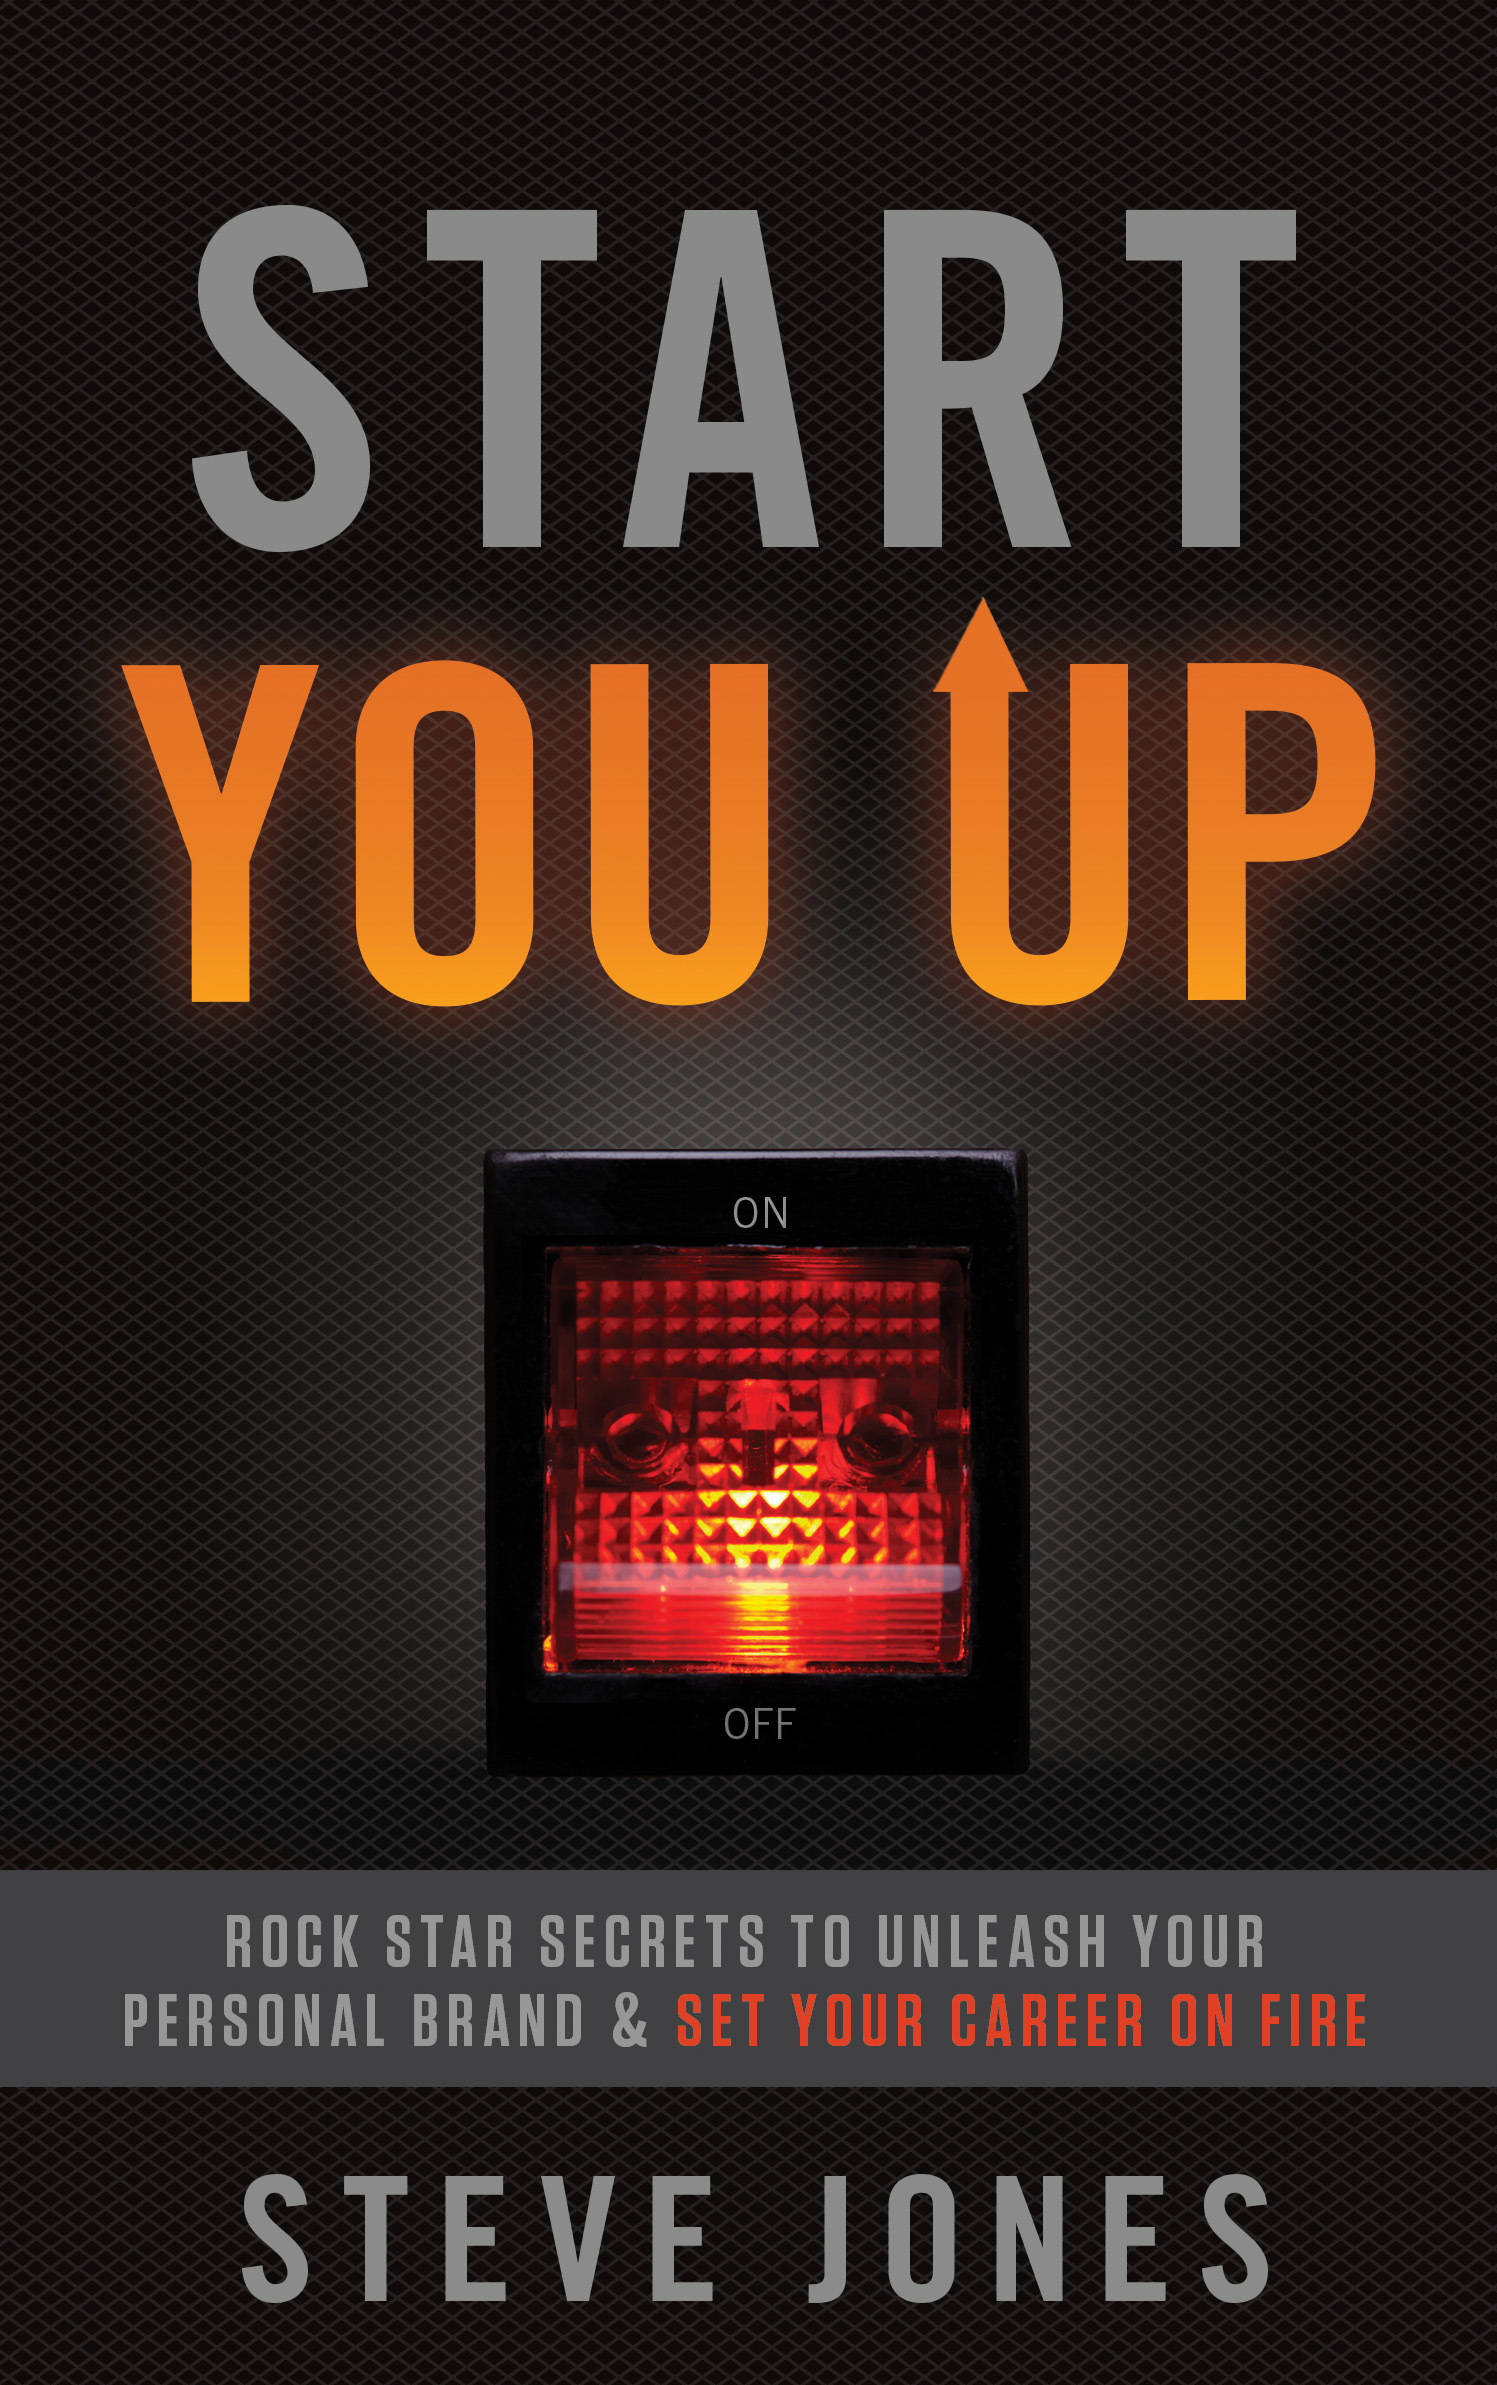 Order Start You Up now! - Steve's second book turns the rock star branding focus to the individual, showing you how to the use secrets of rock legends to set your career on fire. Learn how to differentiate yourself using the 5 P's of Personal Branding with Start You Up.Order Start You Up now!